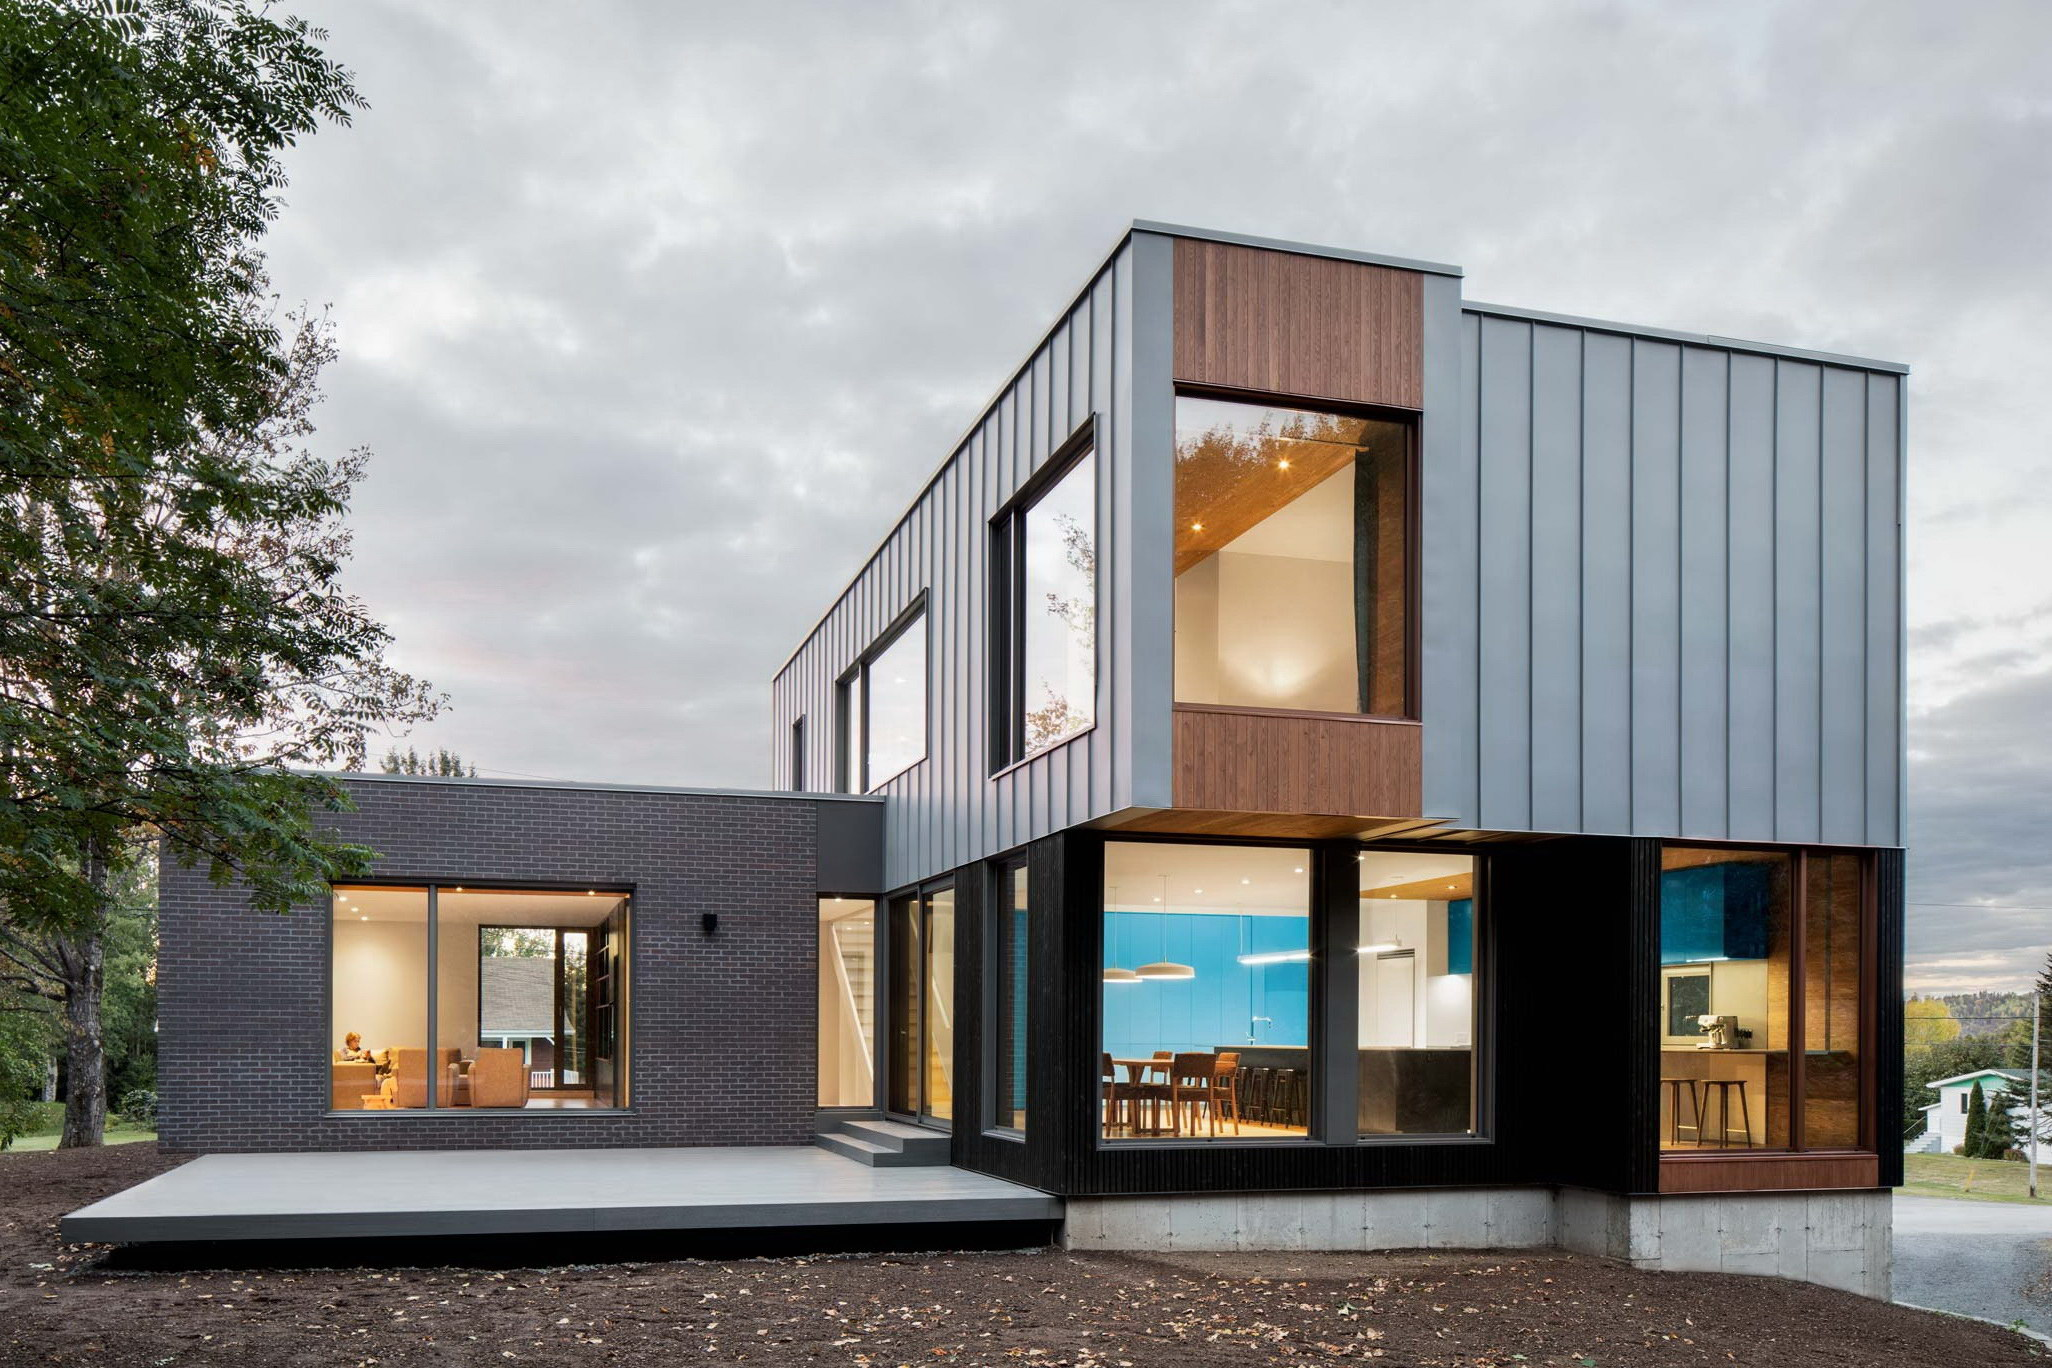 Bic Residence by NatureHumaine